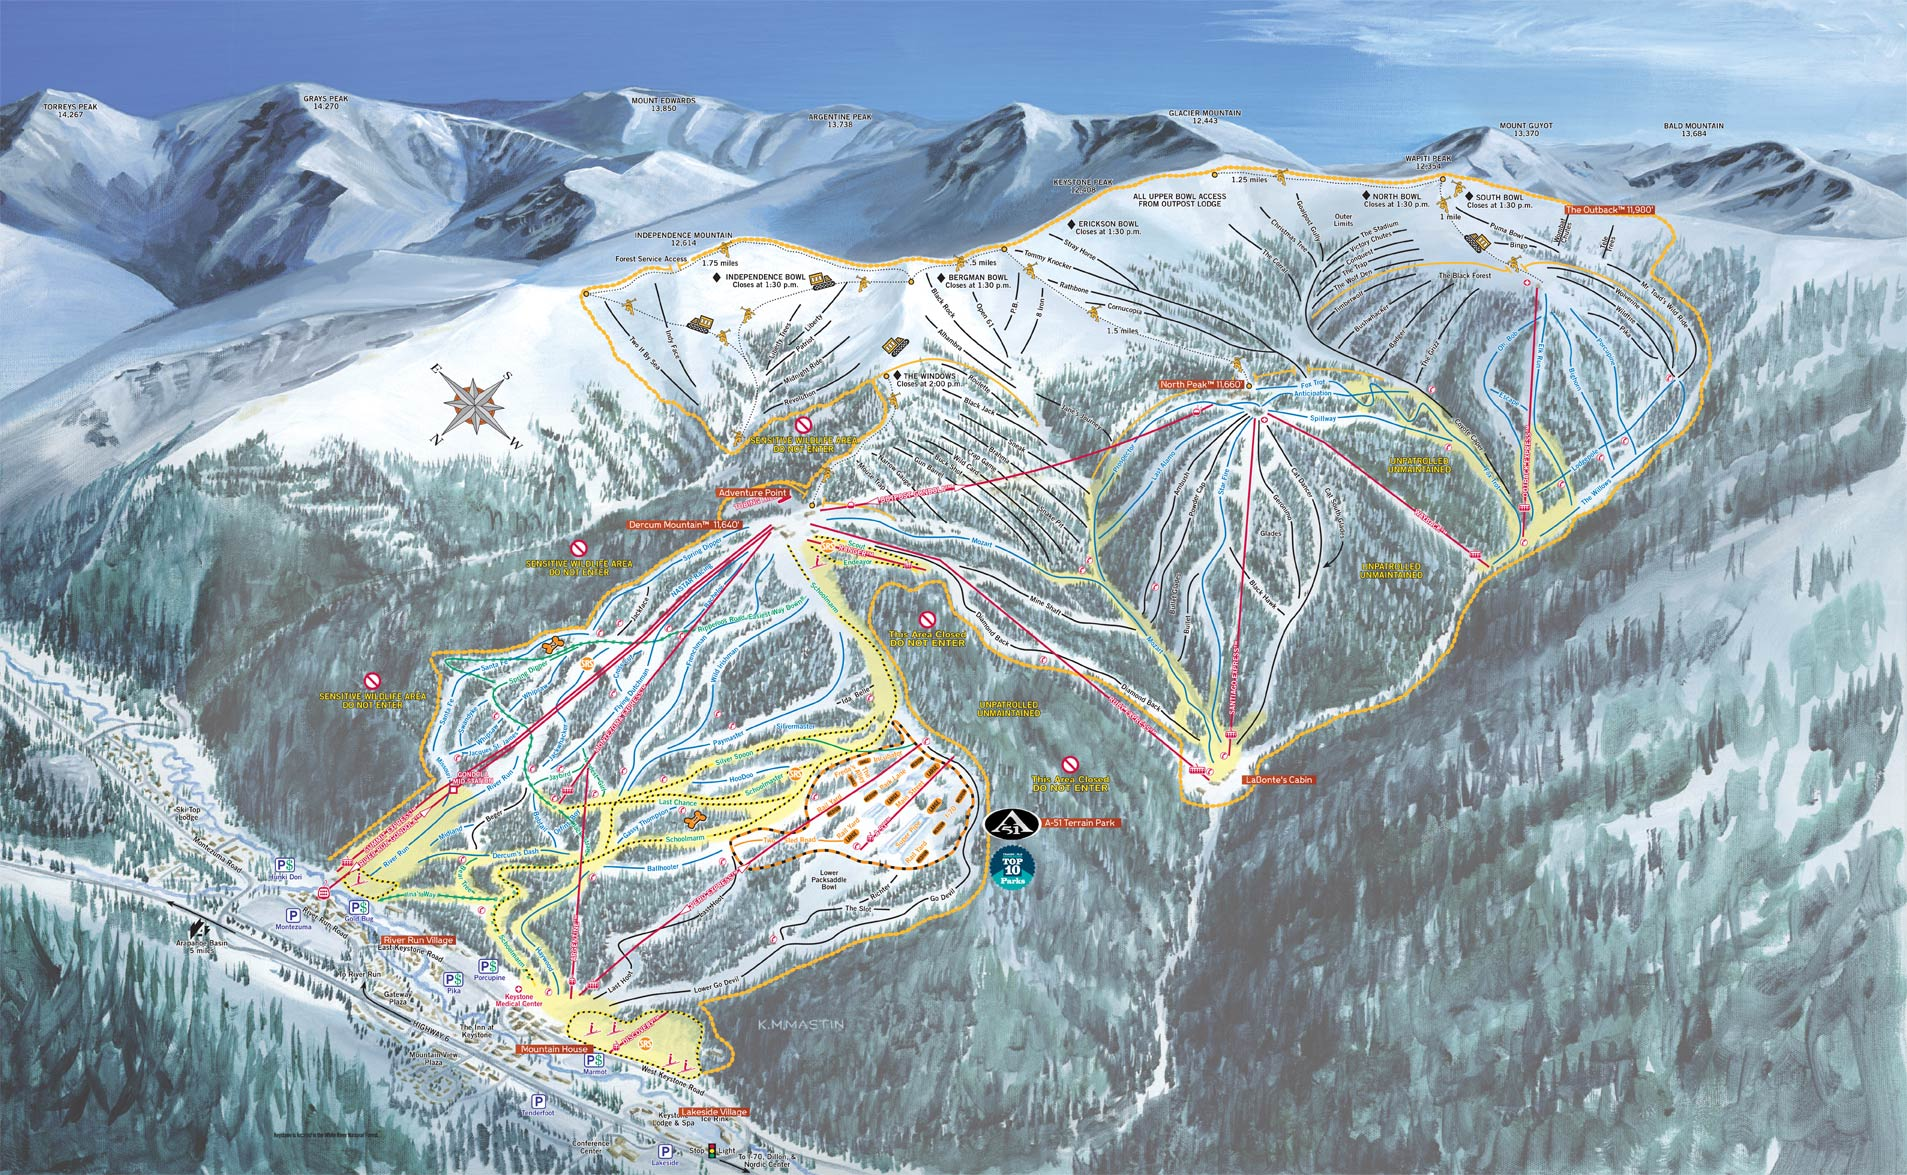 keystone resort - skimap